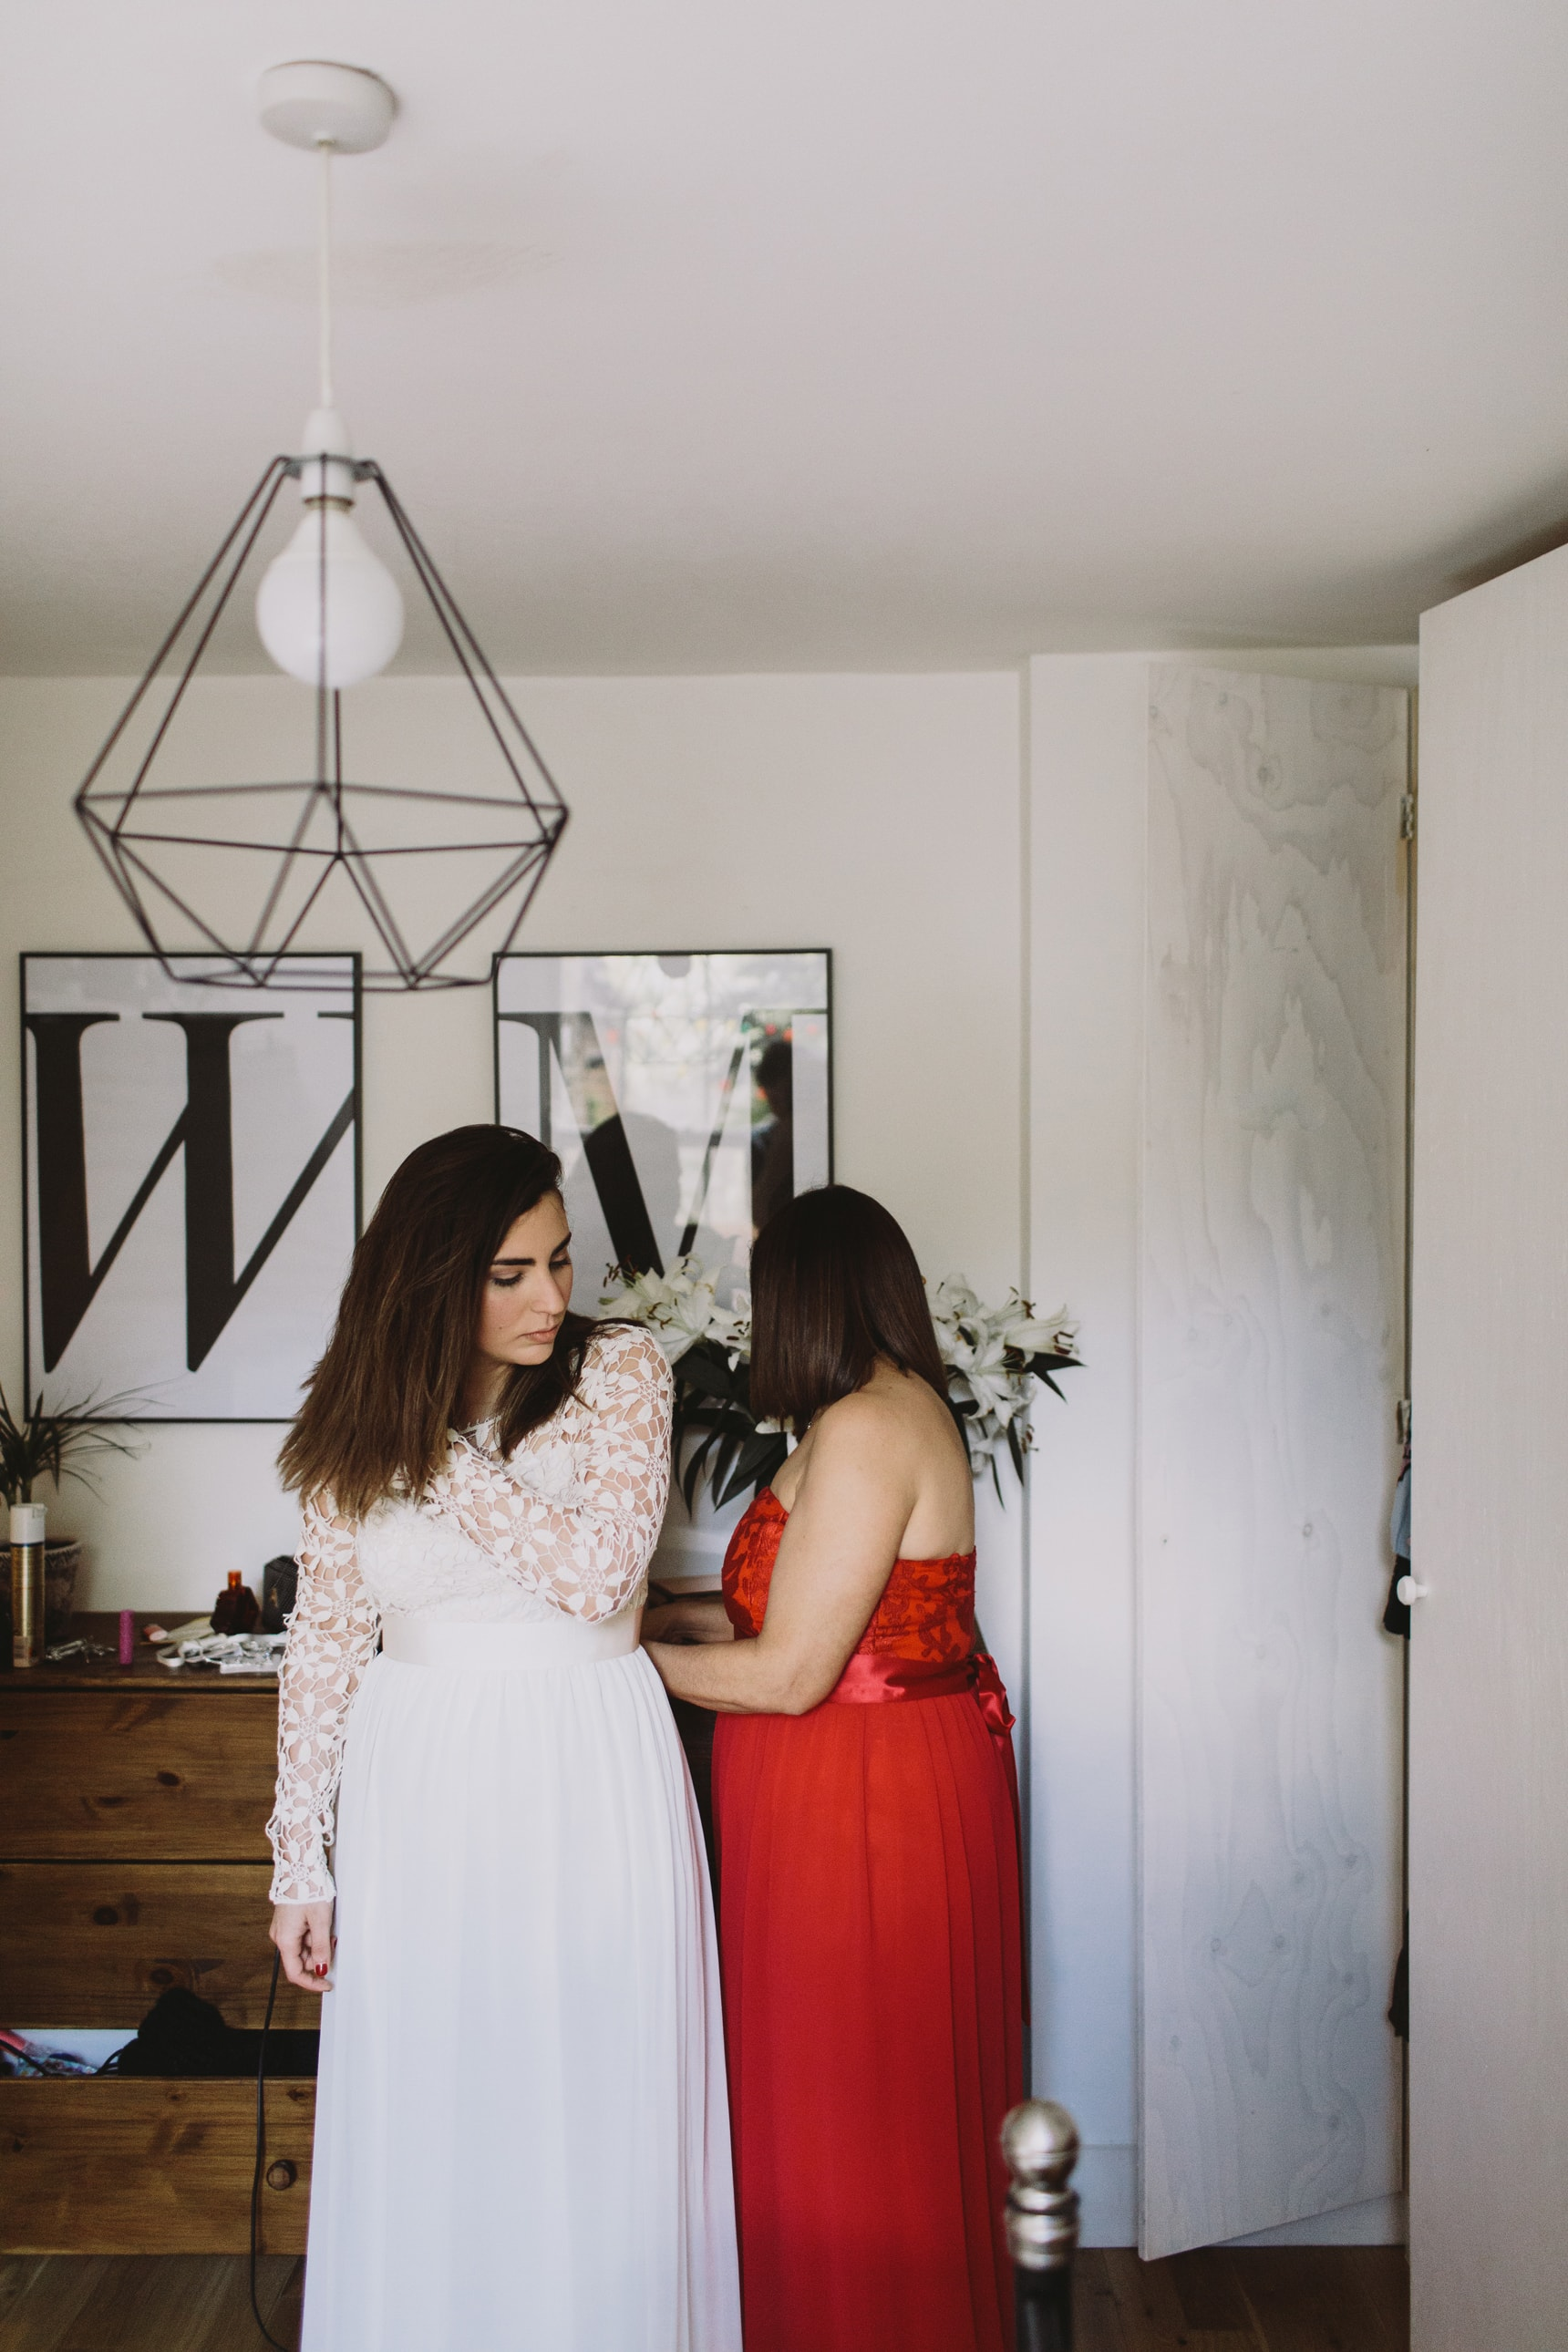 south london wedding photographer